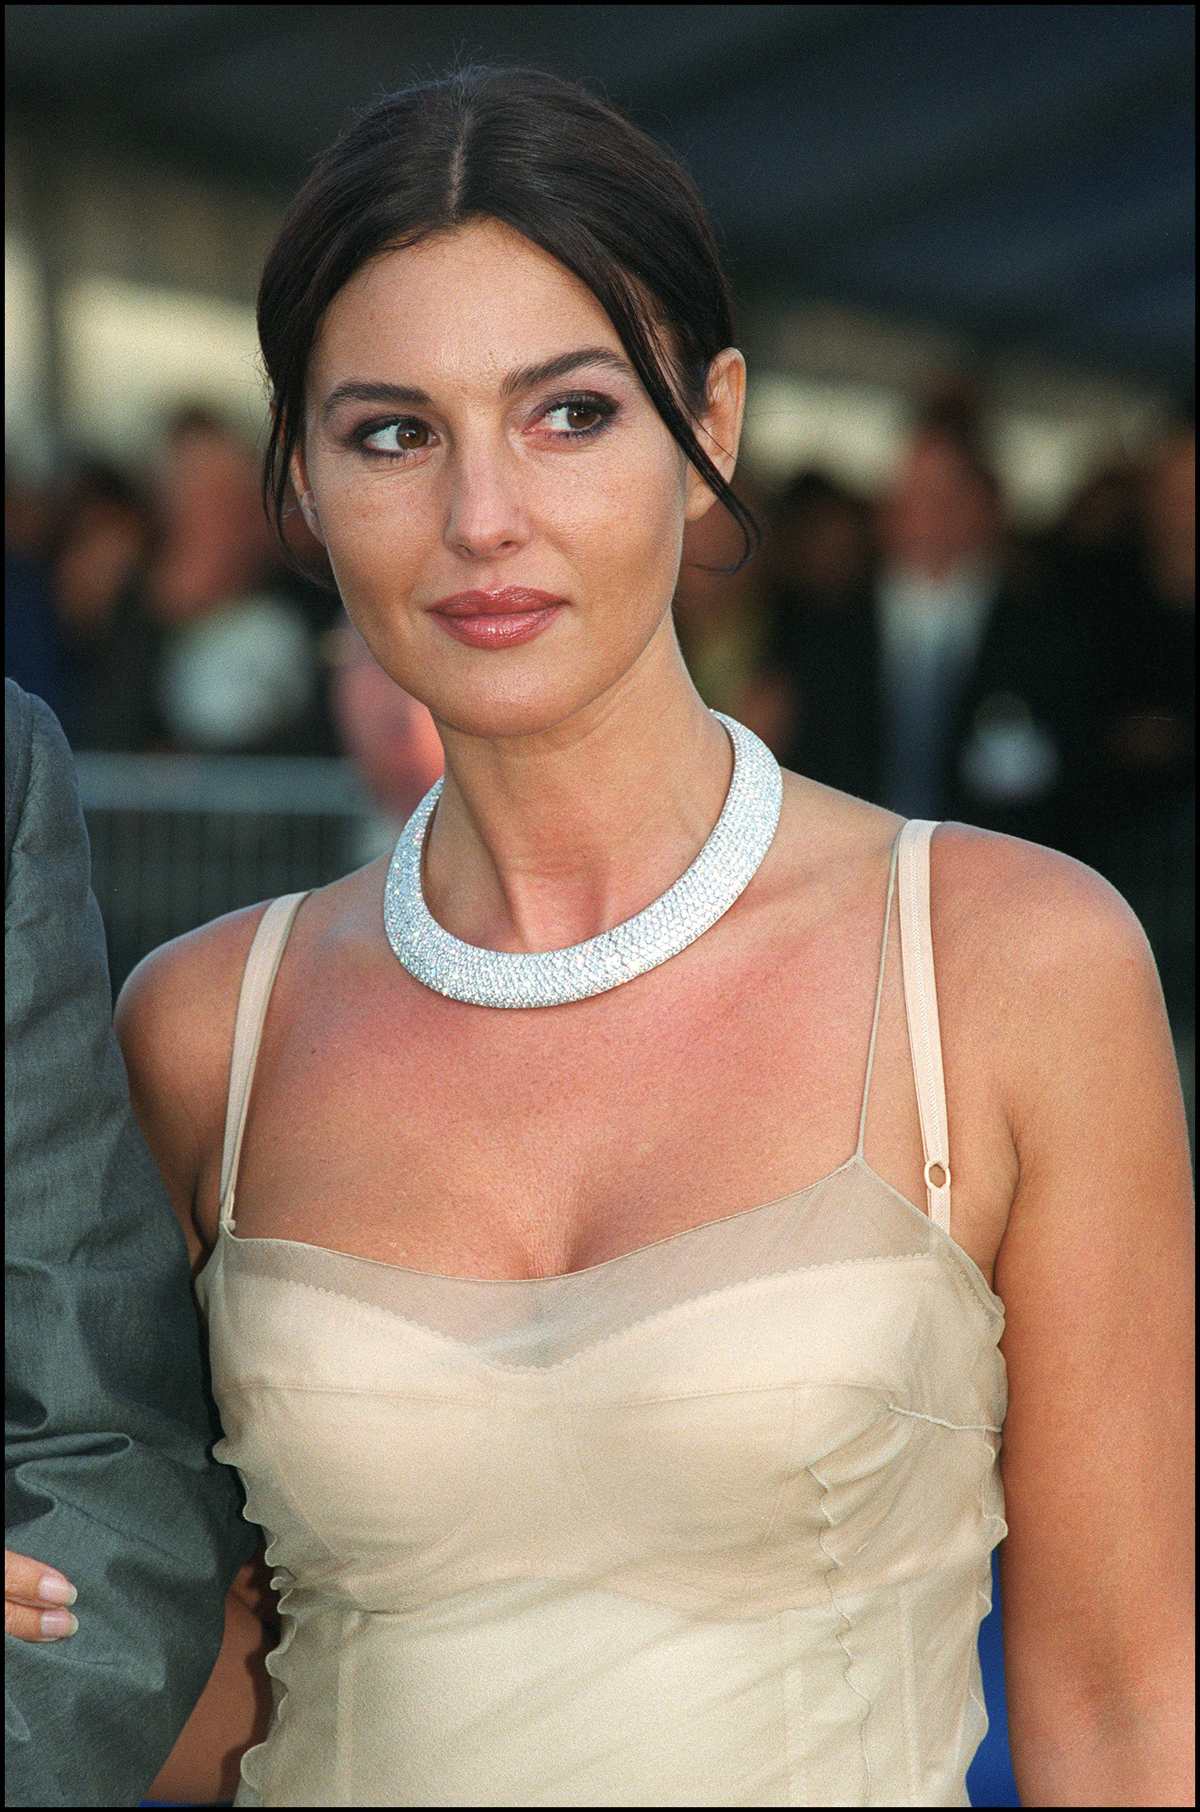 At the Deauville Film Festival, 2000